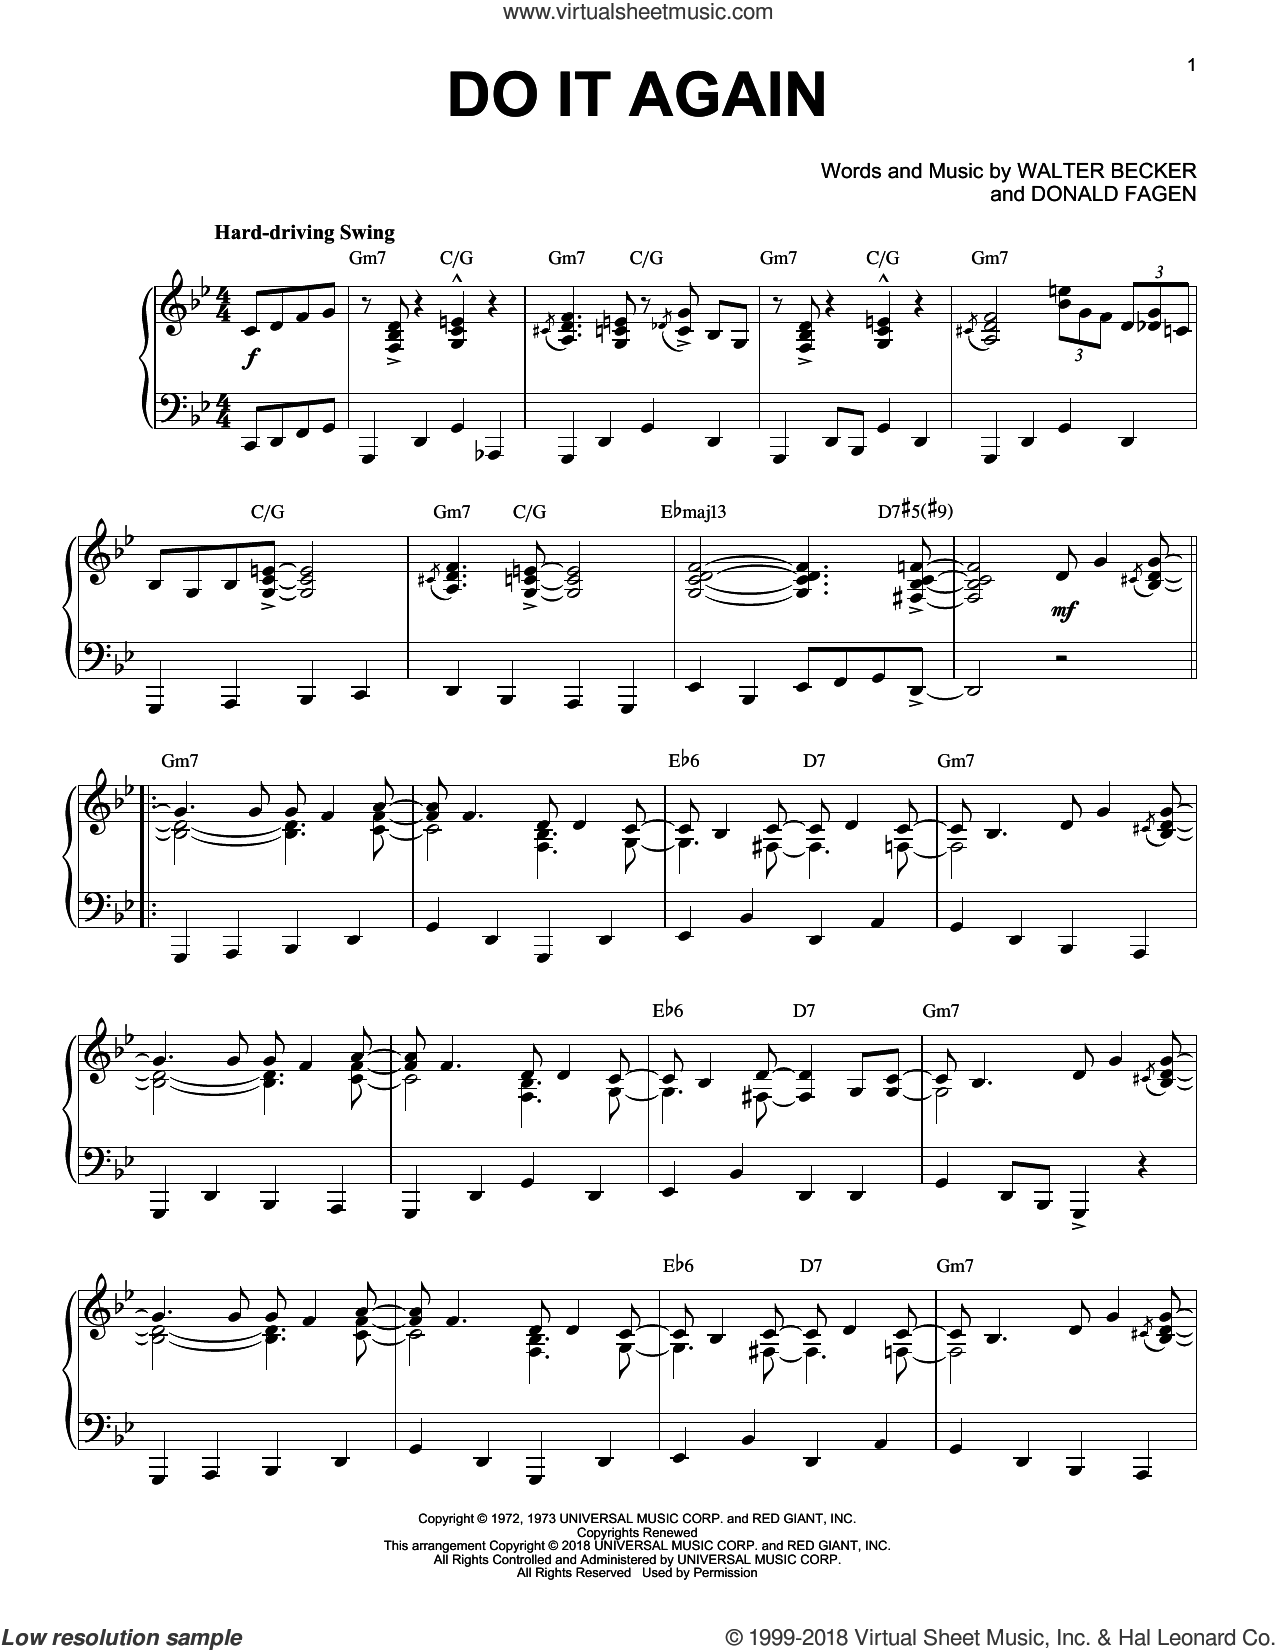 Do It Again sheet music for piano solo by Steely Dan, Donald Fagen and Walter Becker, intermediate skill level